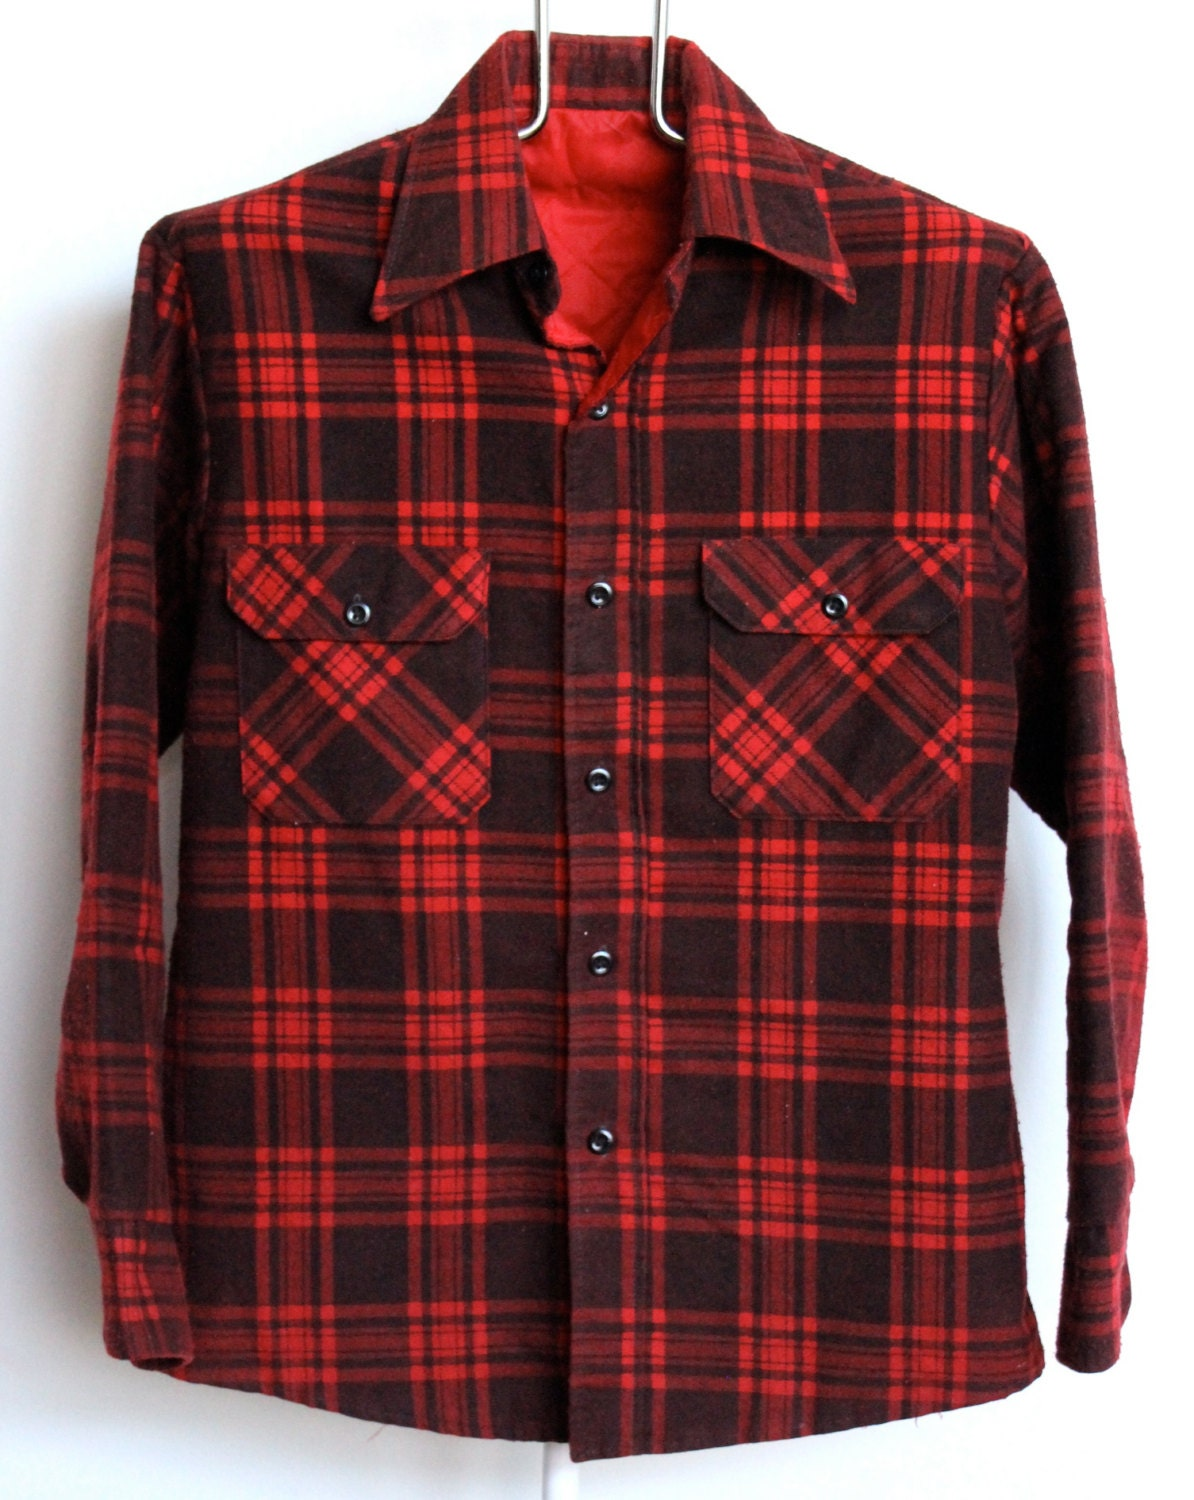 Bust axe in our Men's Free Swingin' flannel shirts, packed with features and comfort for any job. Only at Duluth Trading Company. Jackets & Coats Vests Pants & Overalls Sport Coats View All; Accessories Bags & Luggage Wallets Turmeric Multi Plaid. Men's Free Swingin' Flannel Shirt $ $ - .